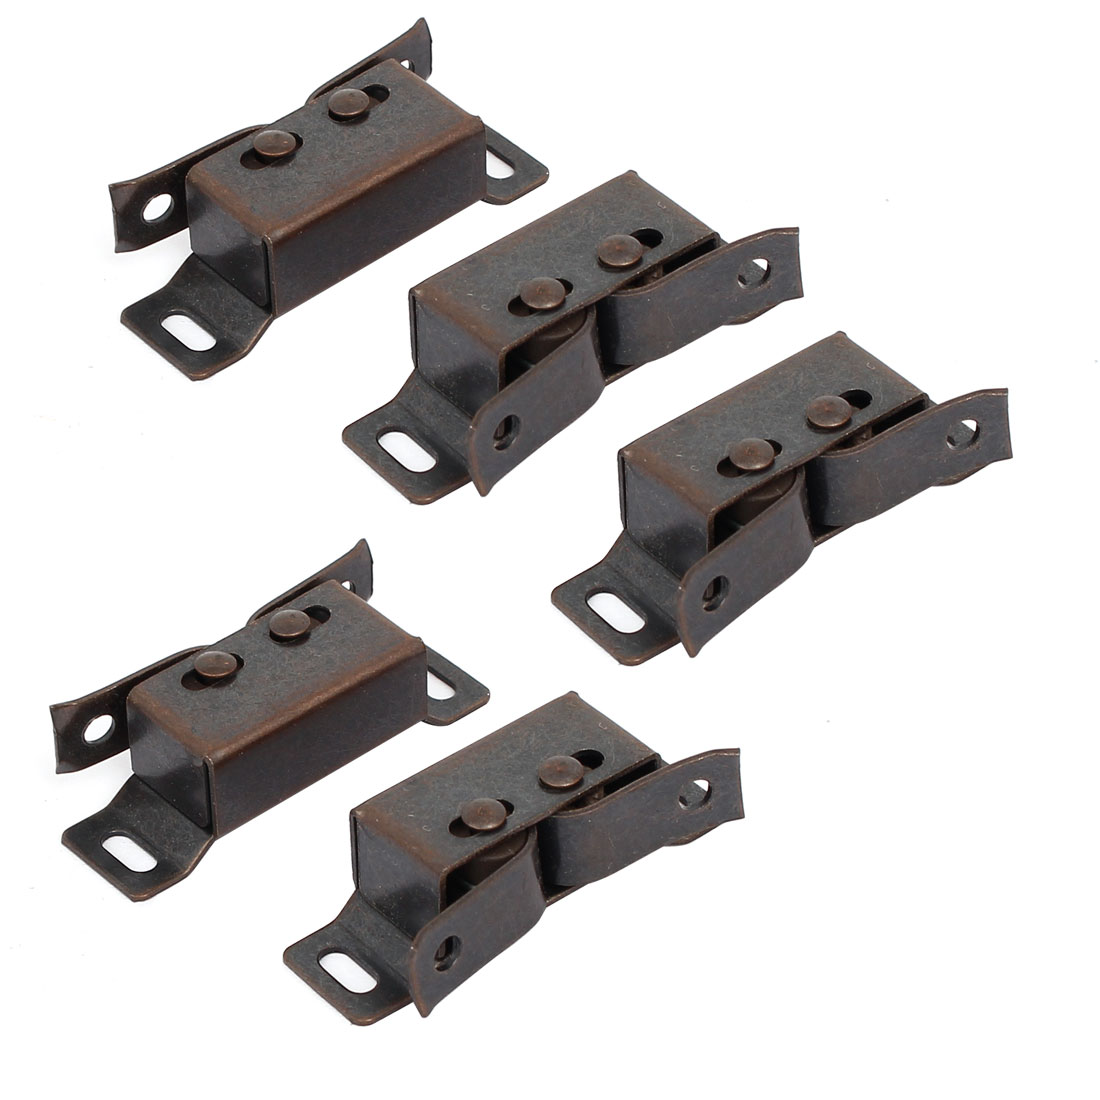 Wardrobe Door Double Ball Roller Latch Catches Copper Tone 46x17x13mm 5pcs